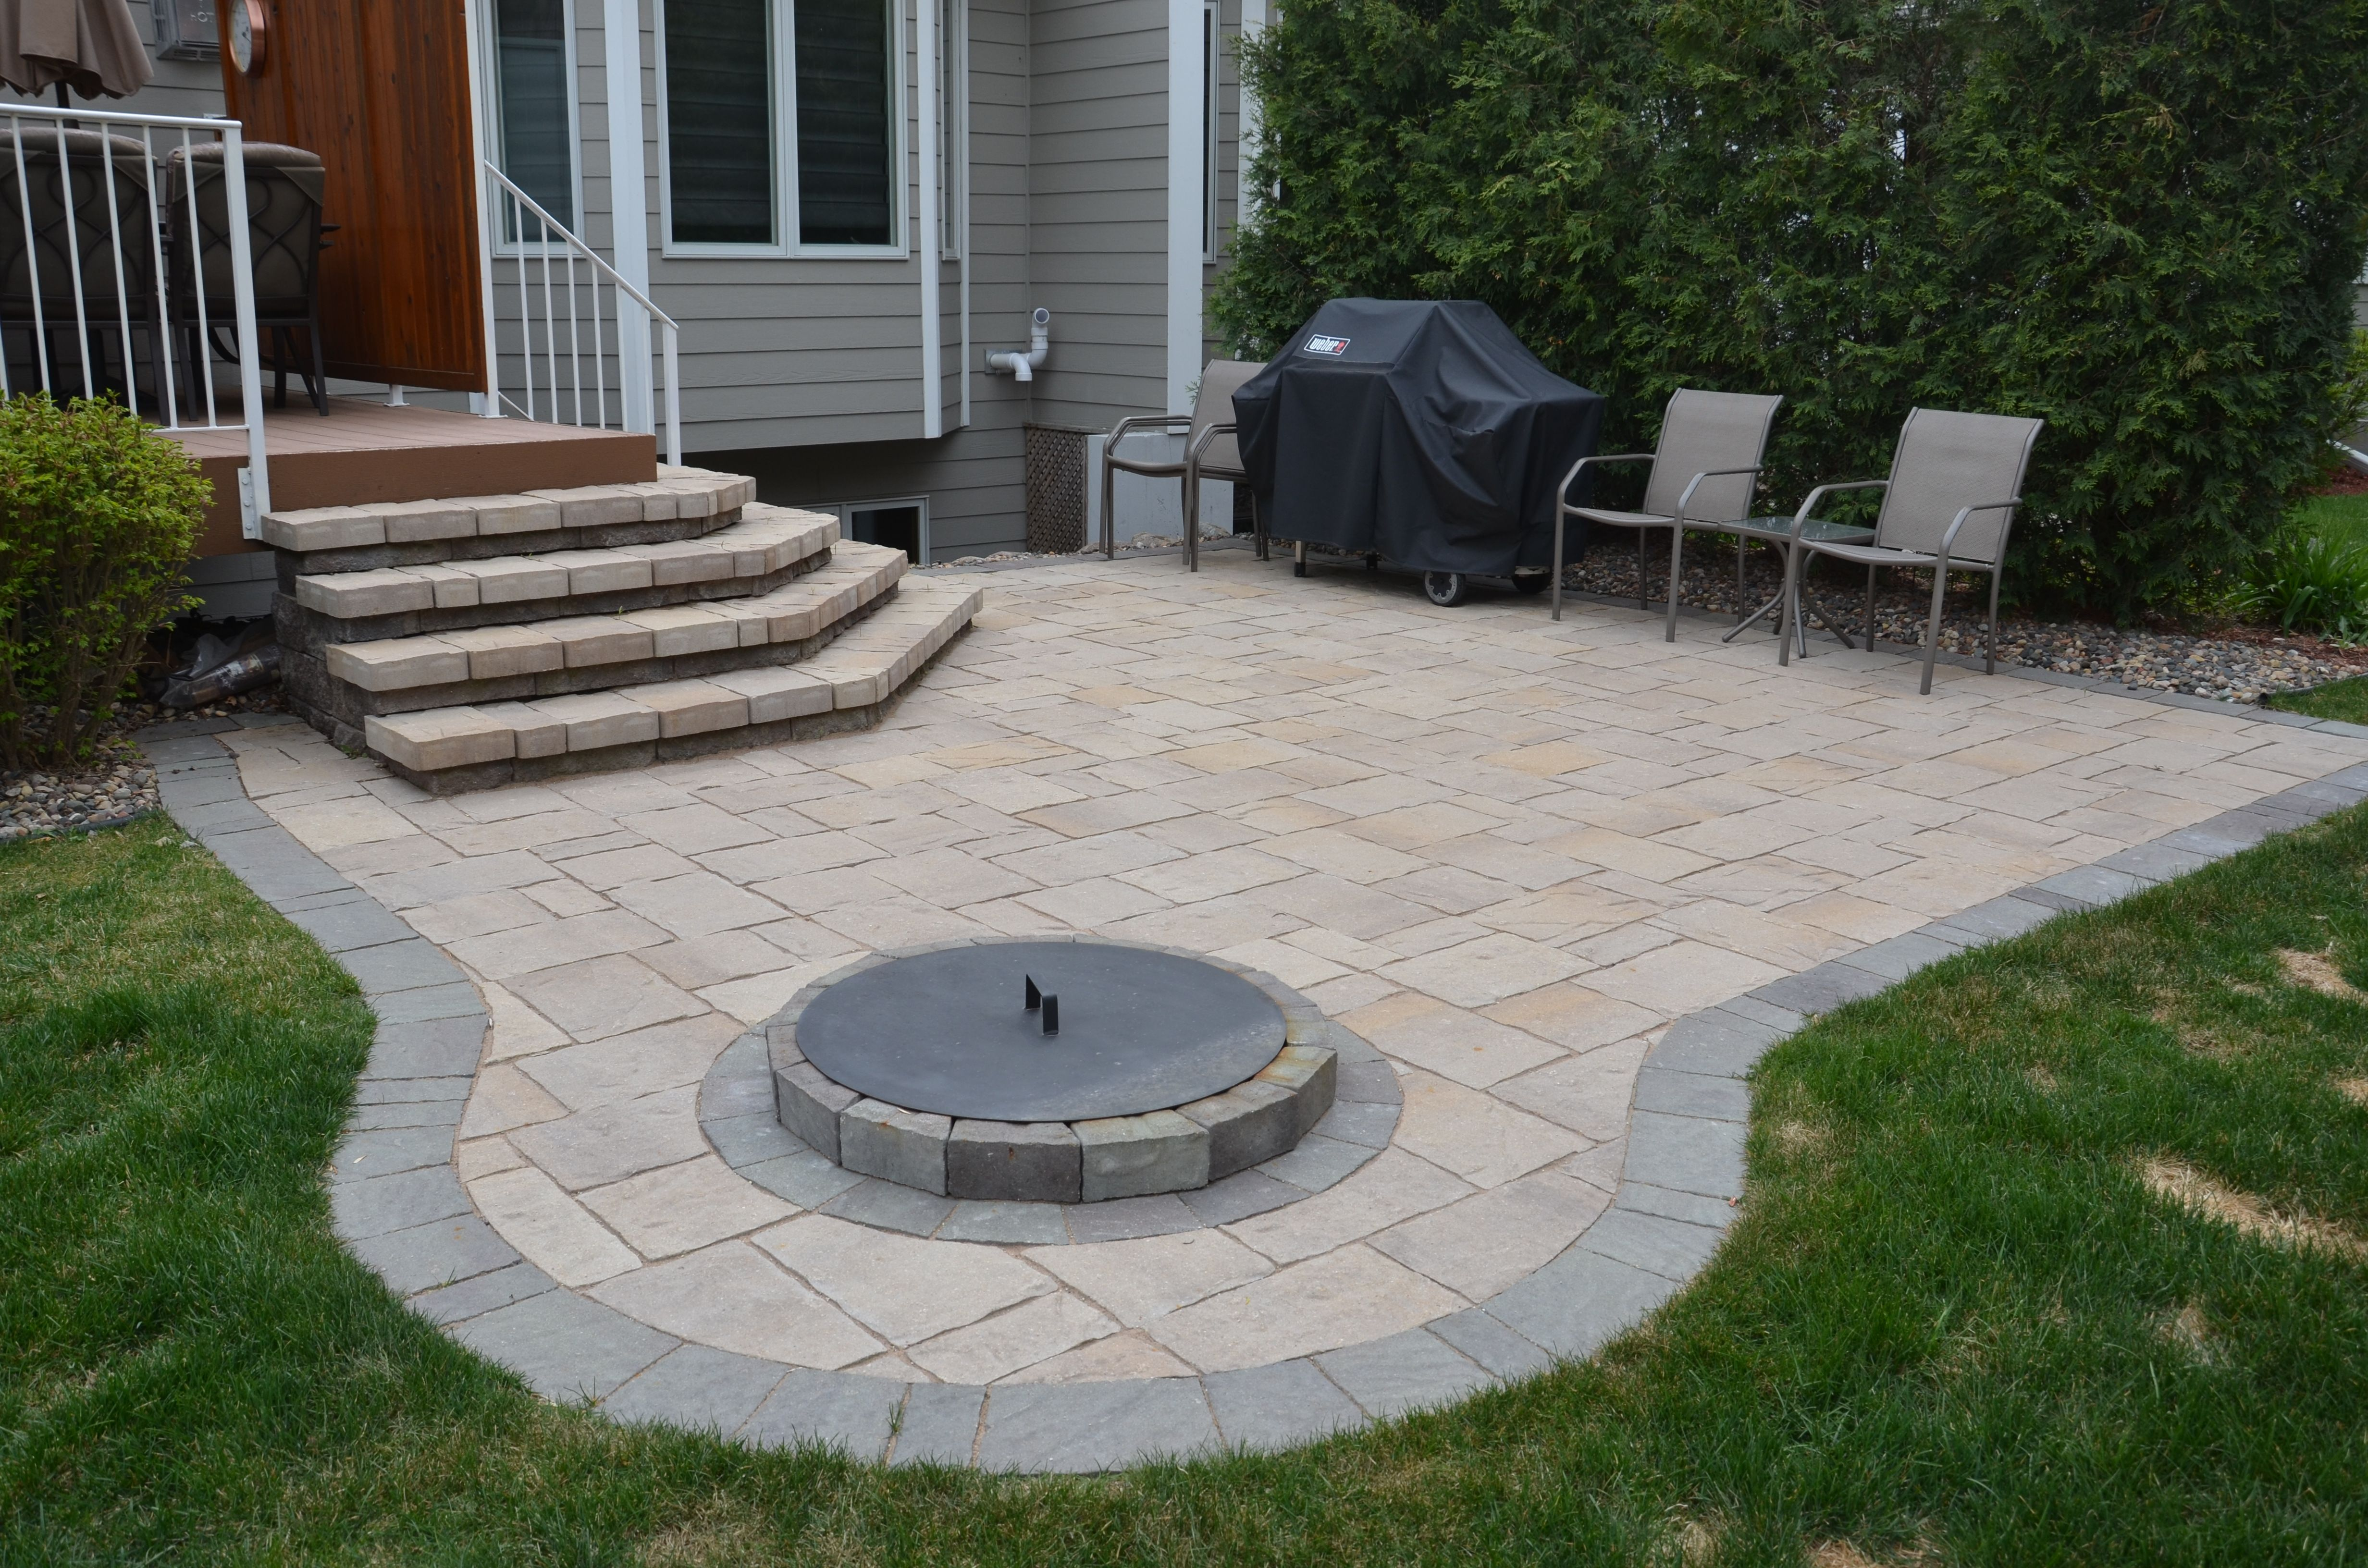 Paver Patio Designs With Fire Pit Amazing With Best Of ... on Paver Patio Designs With Fire Pit id=75434